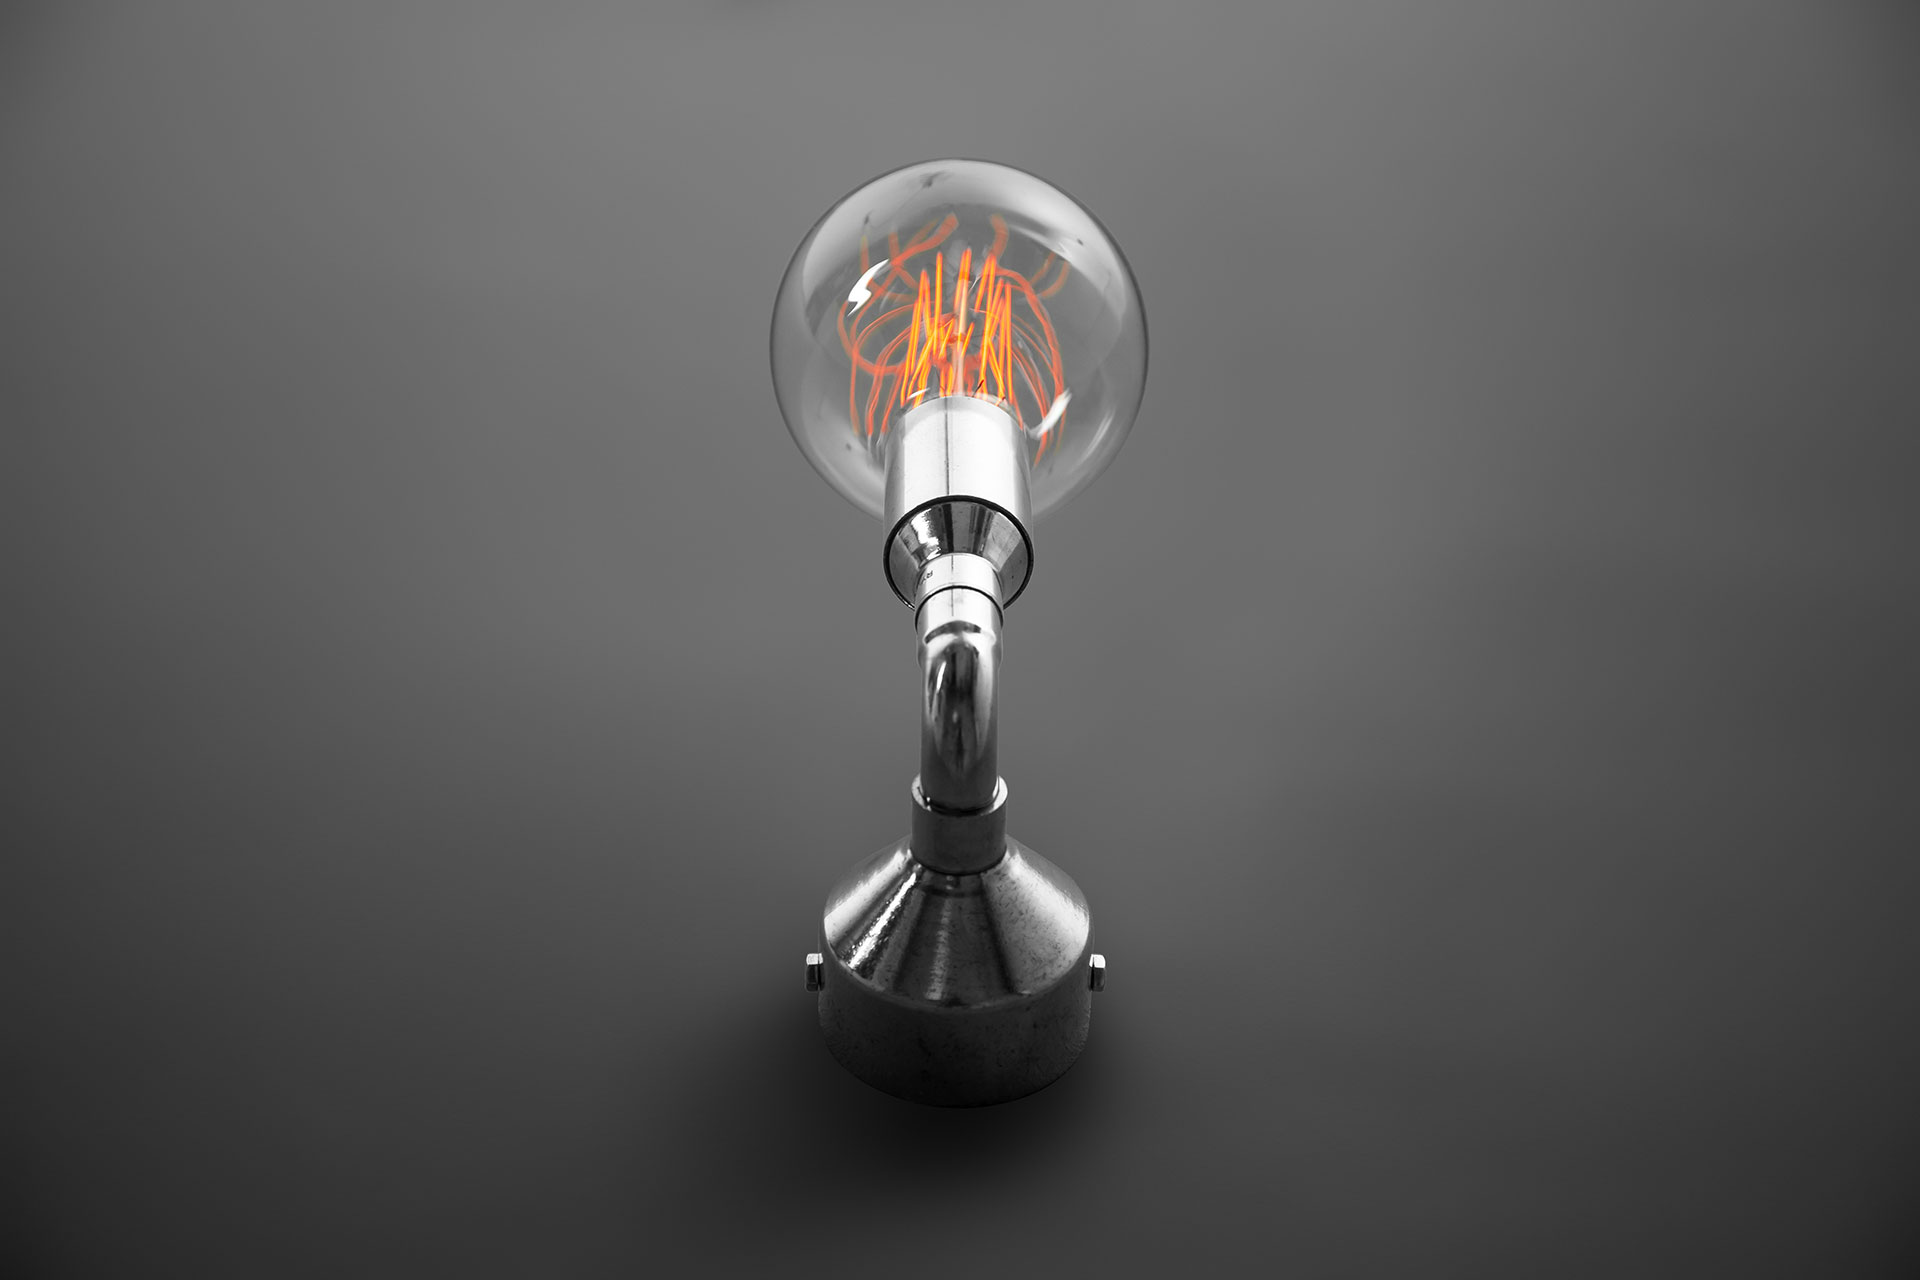 Small silver sconce in loft lighting style